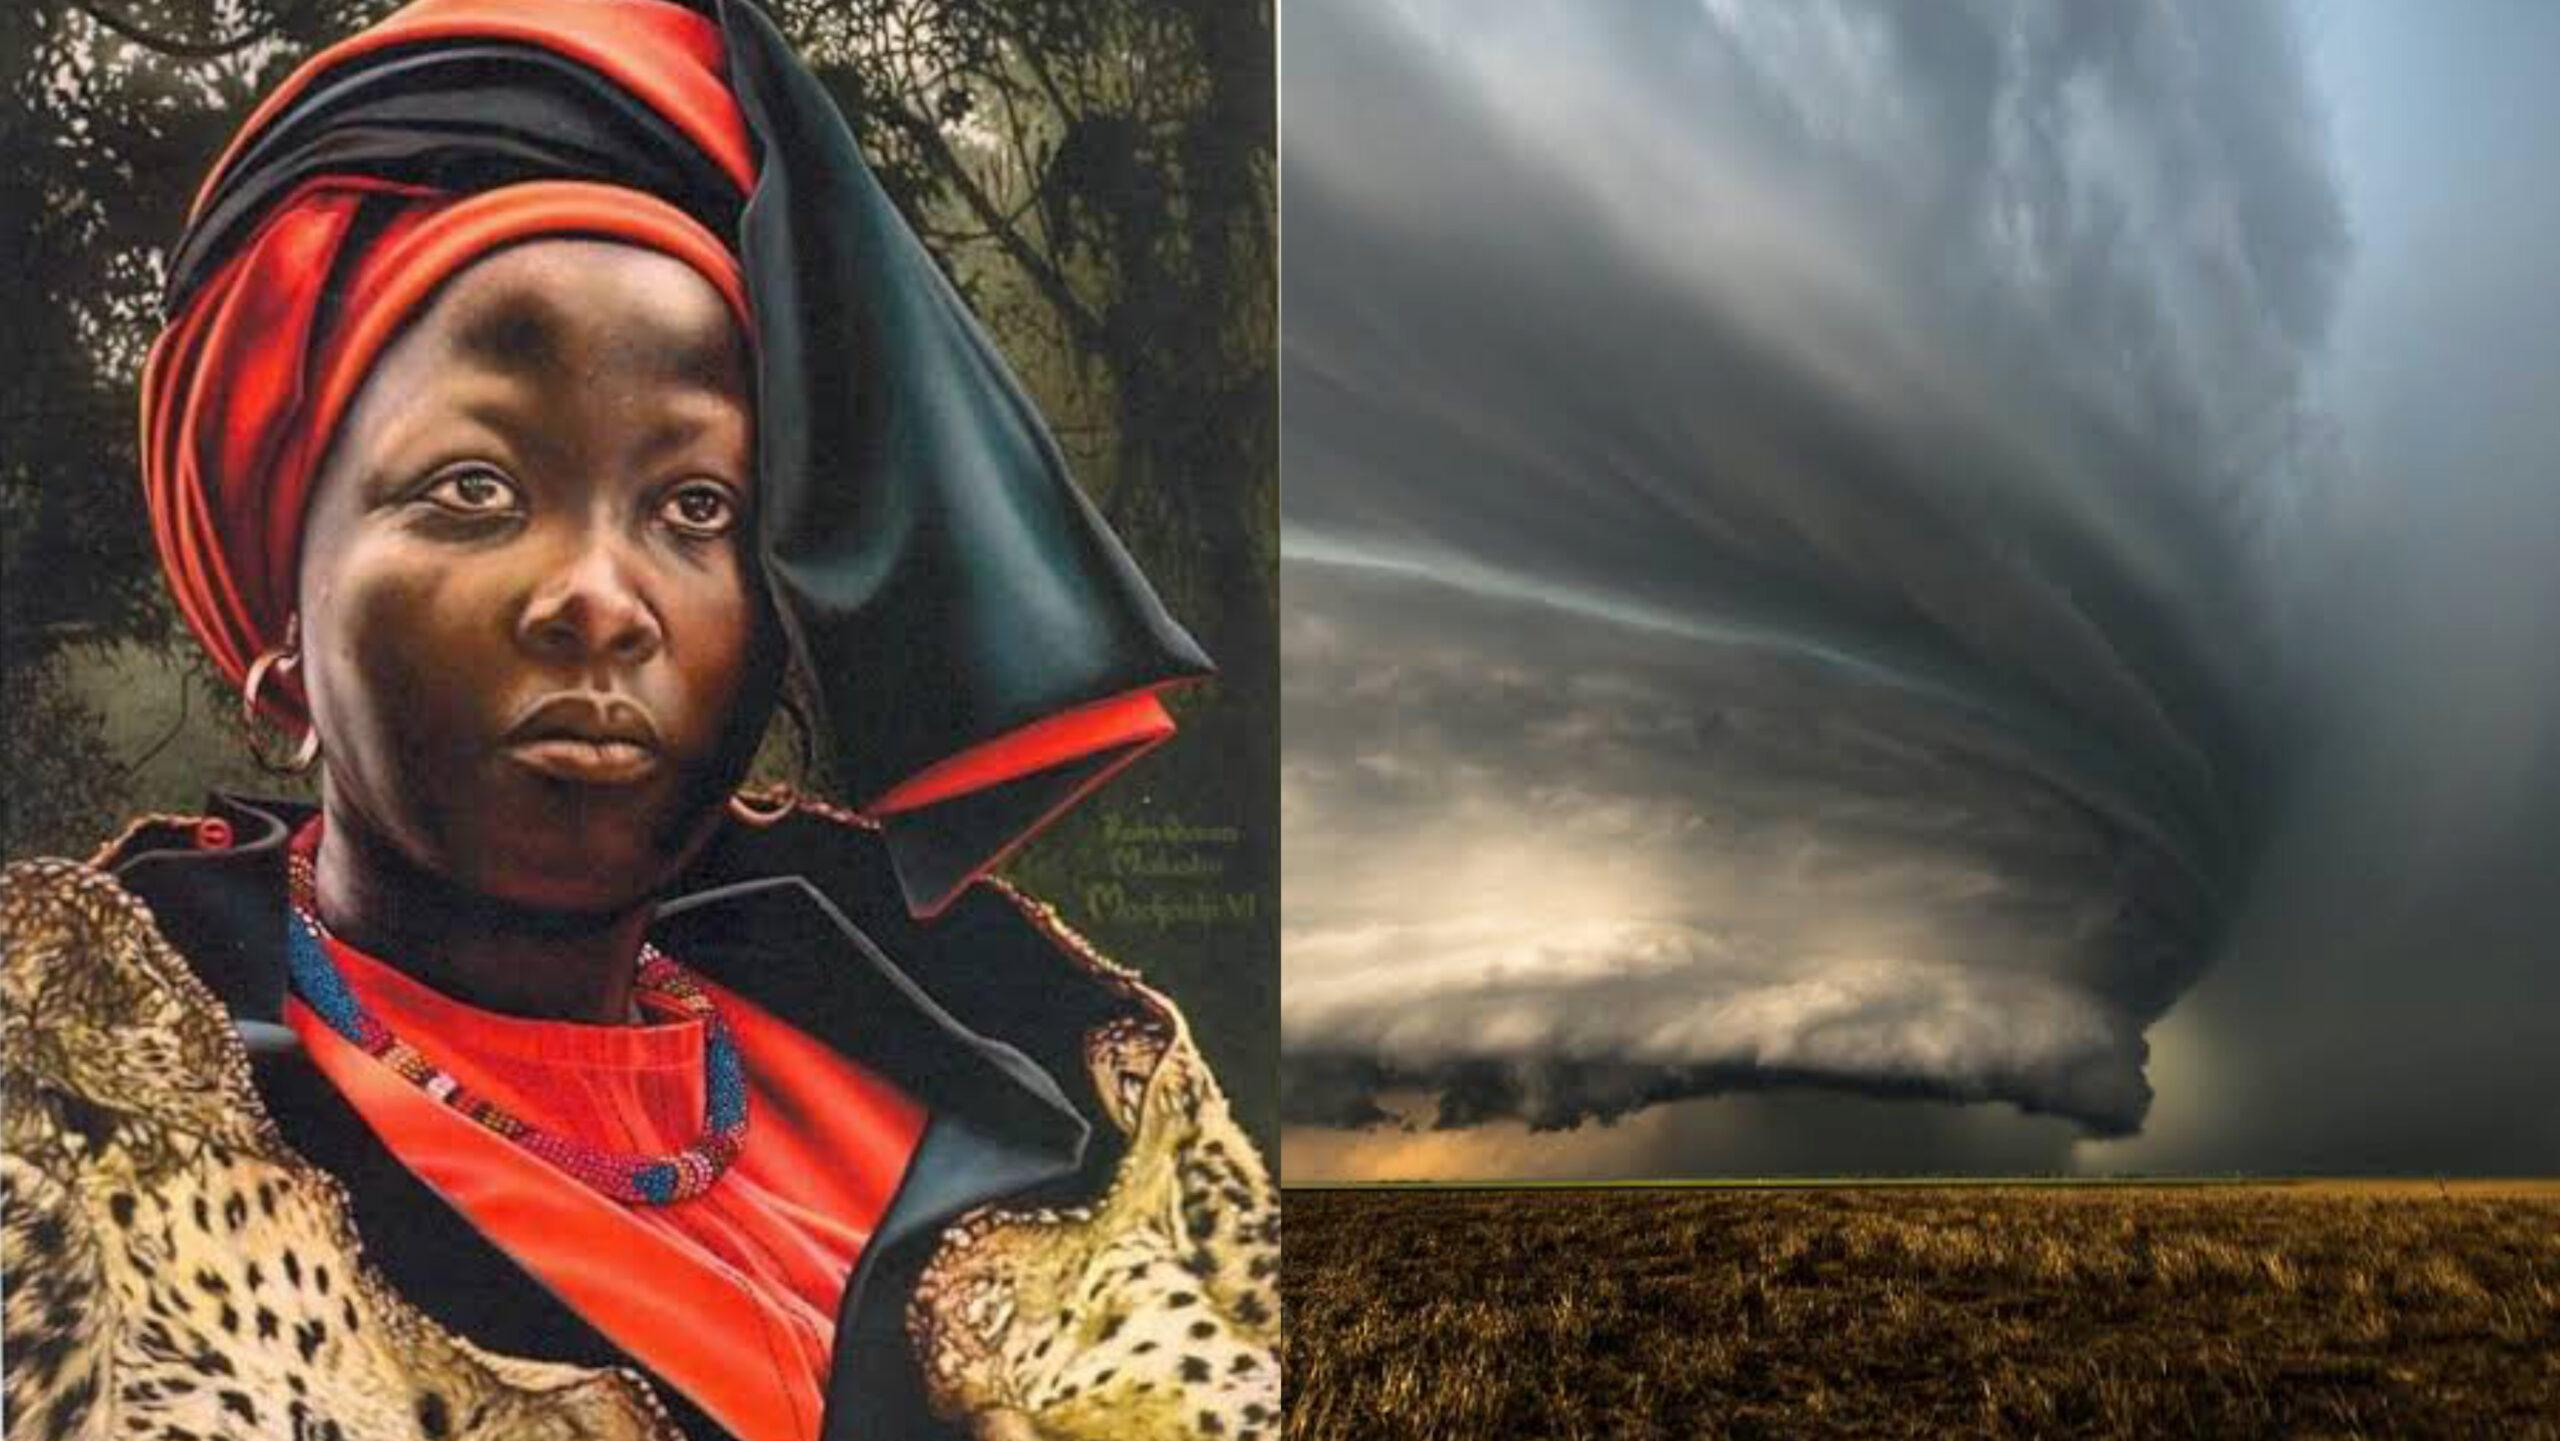 African sky rulers: The Rain Queens of Balobedu with ability to control clouds & rainfall